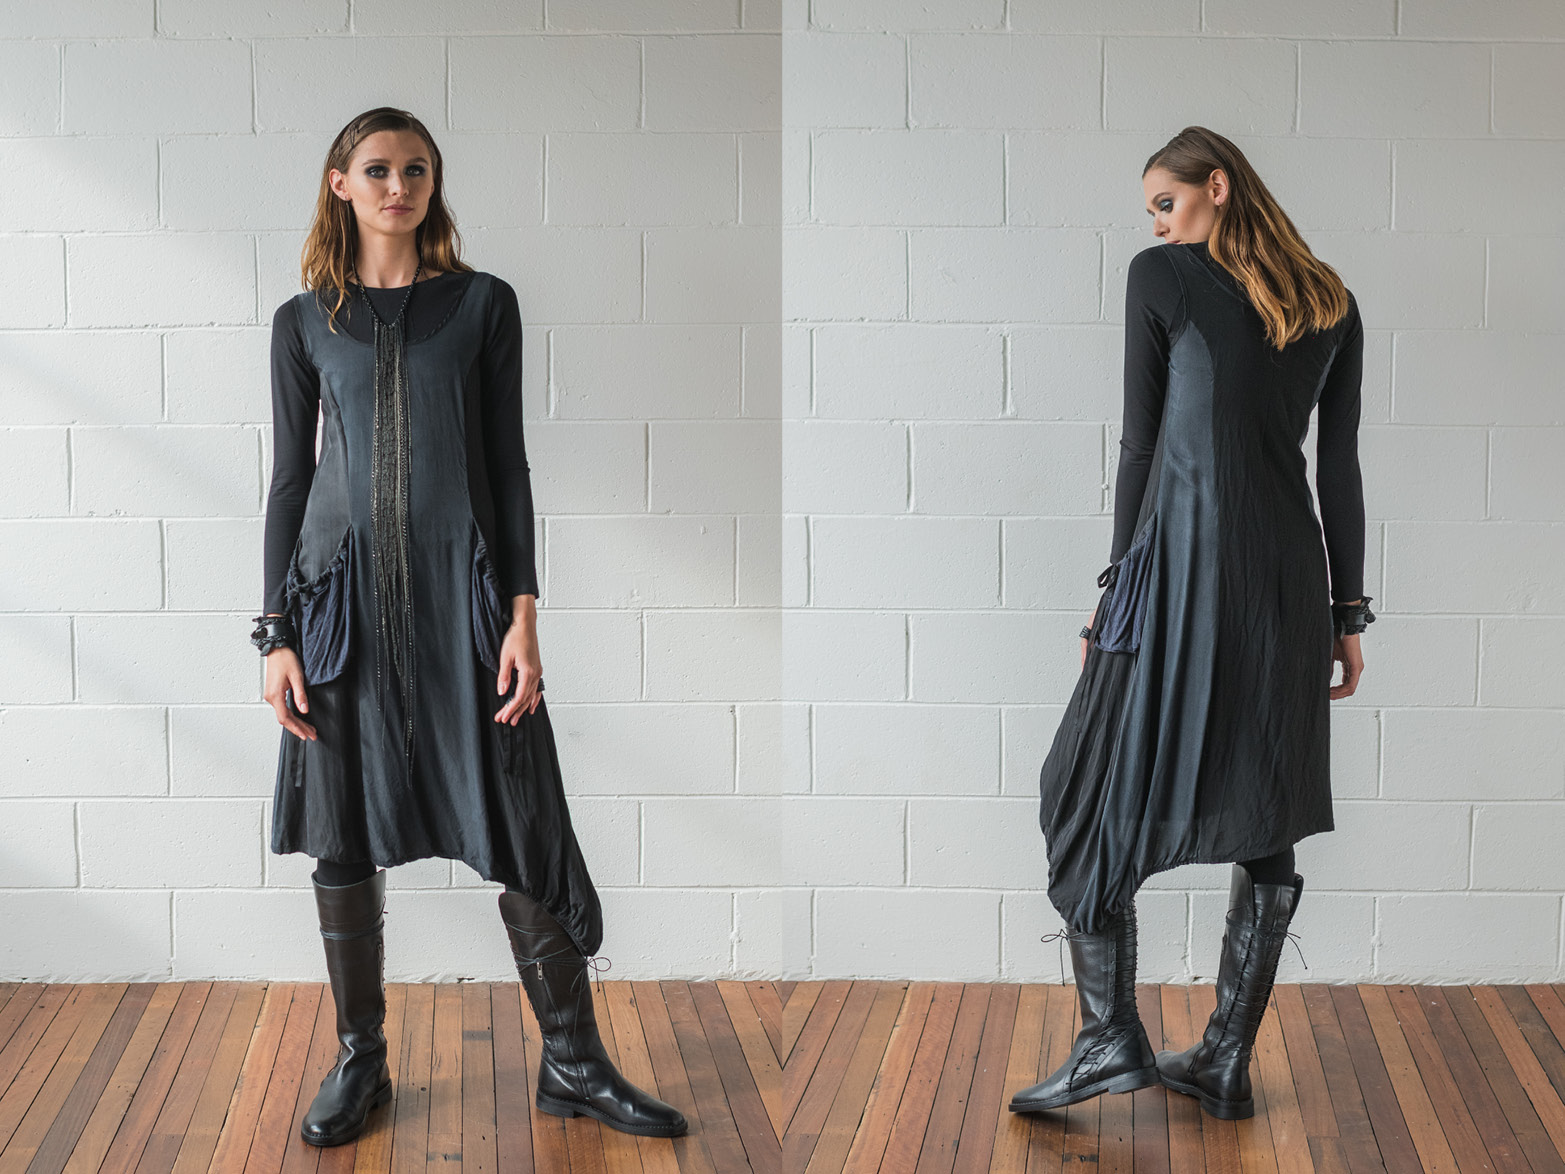 Multitude top, Rogue dress, Lanky legs